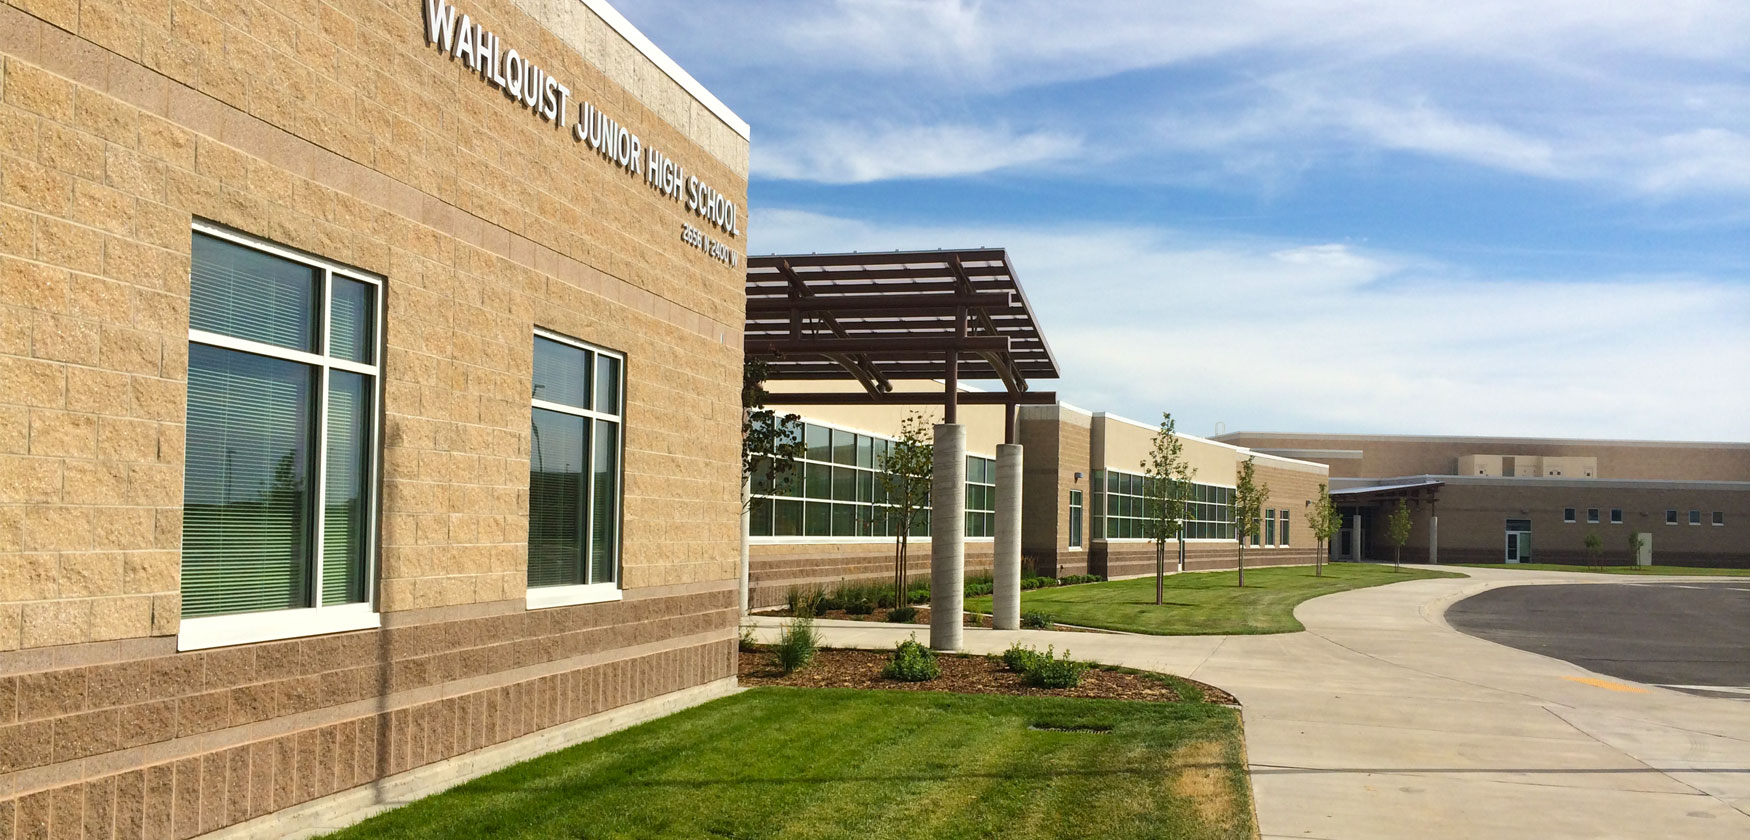 Wahlquist Jr High School exterior - school construction example